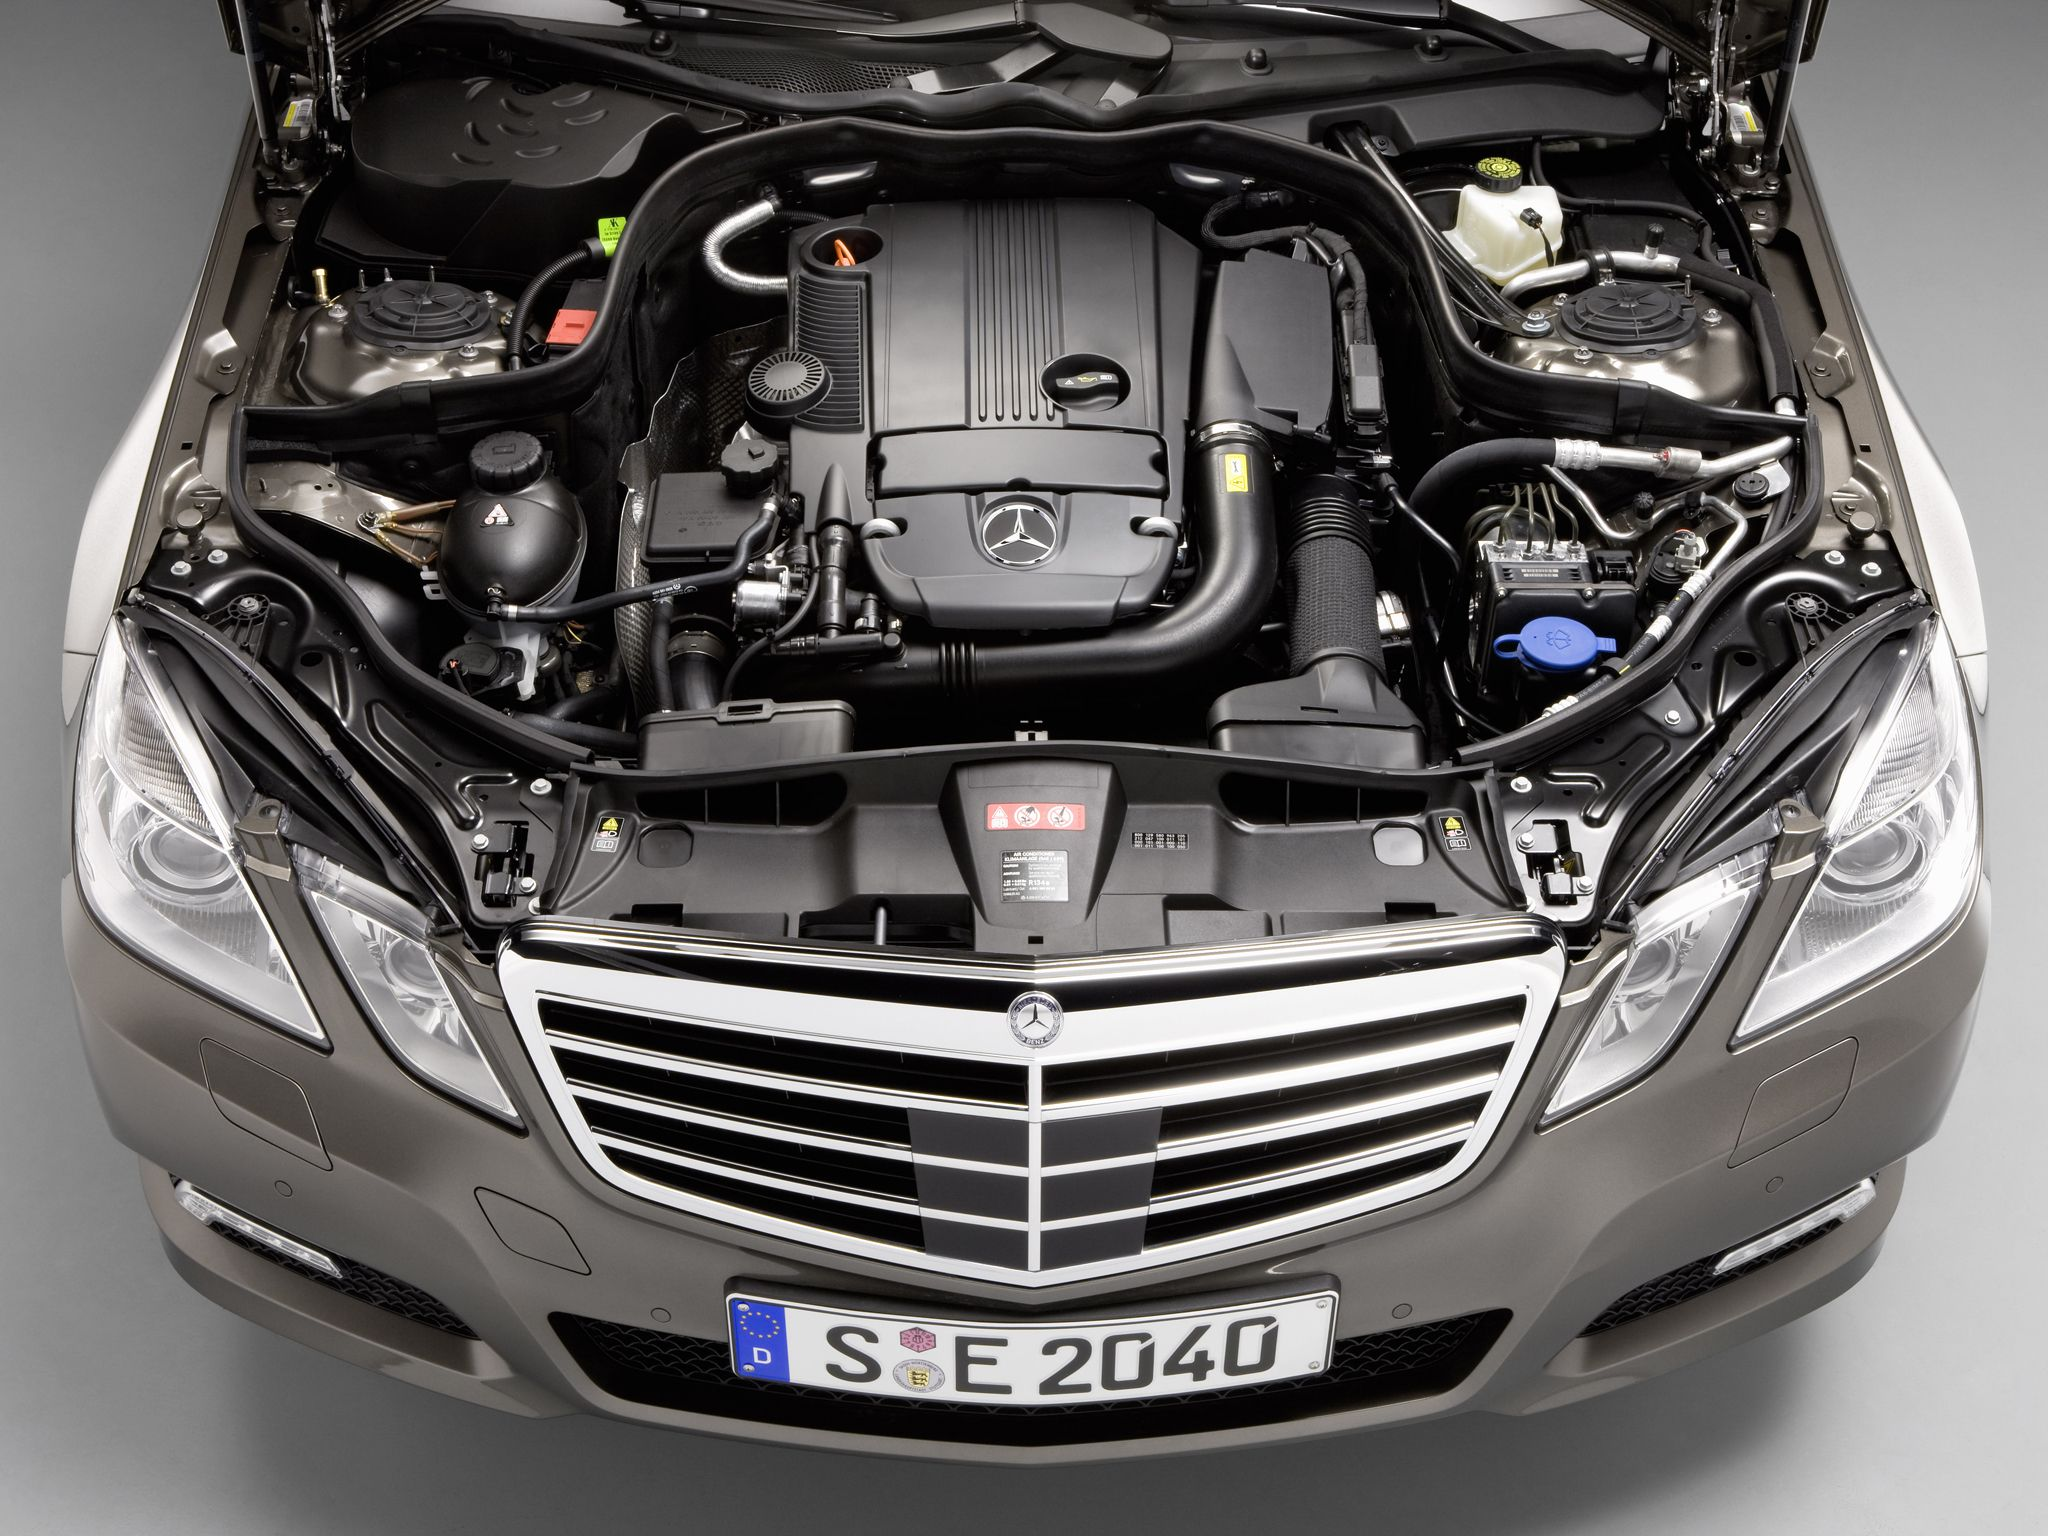 Engine Of Mercedes Benz W212 E Class Coupe